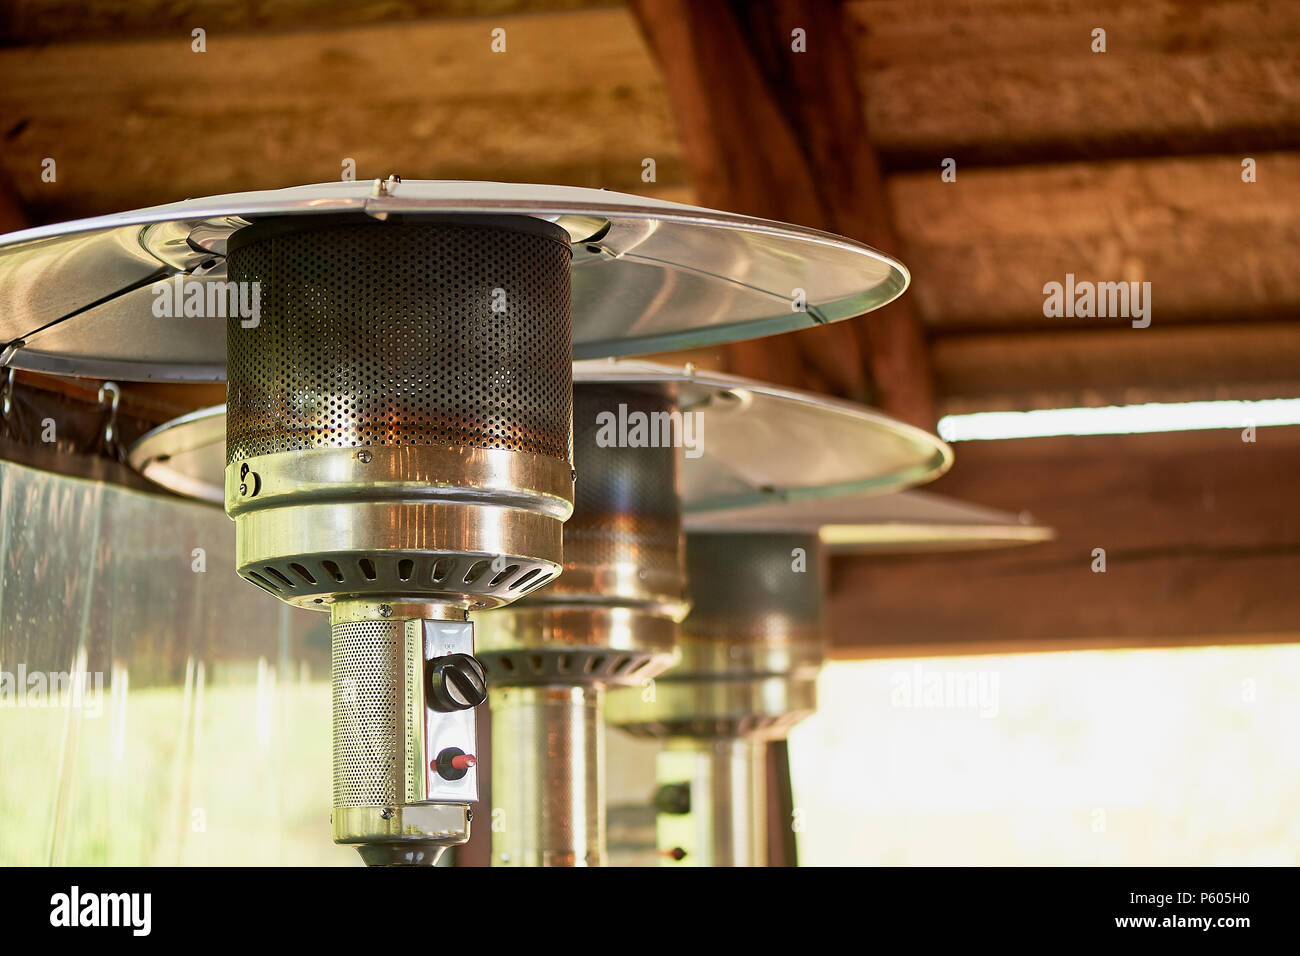 Heat lamp for heating the terrace of a cafe or restaurant.For the Banquet. - Stock Image